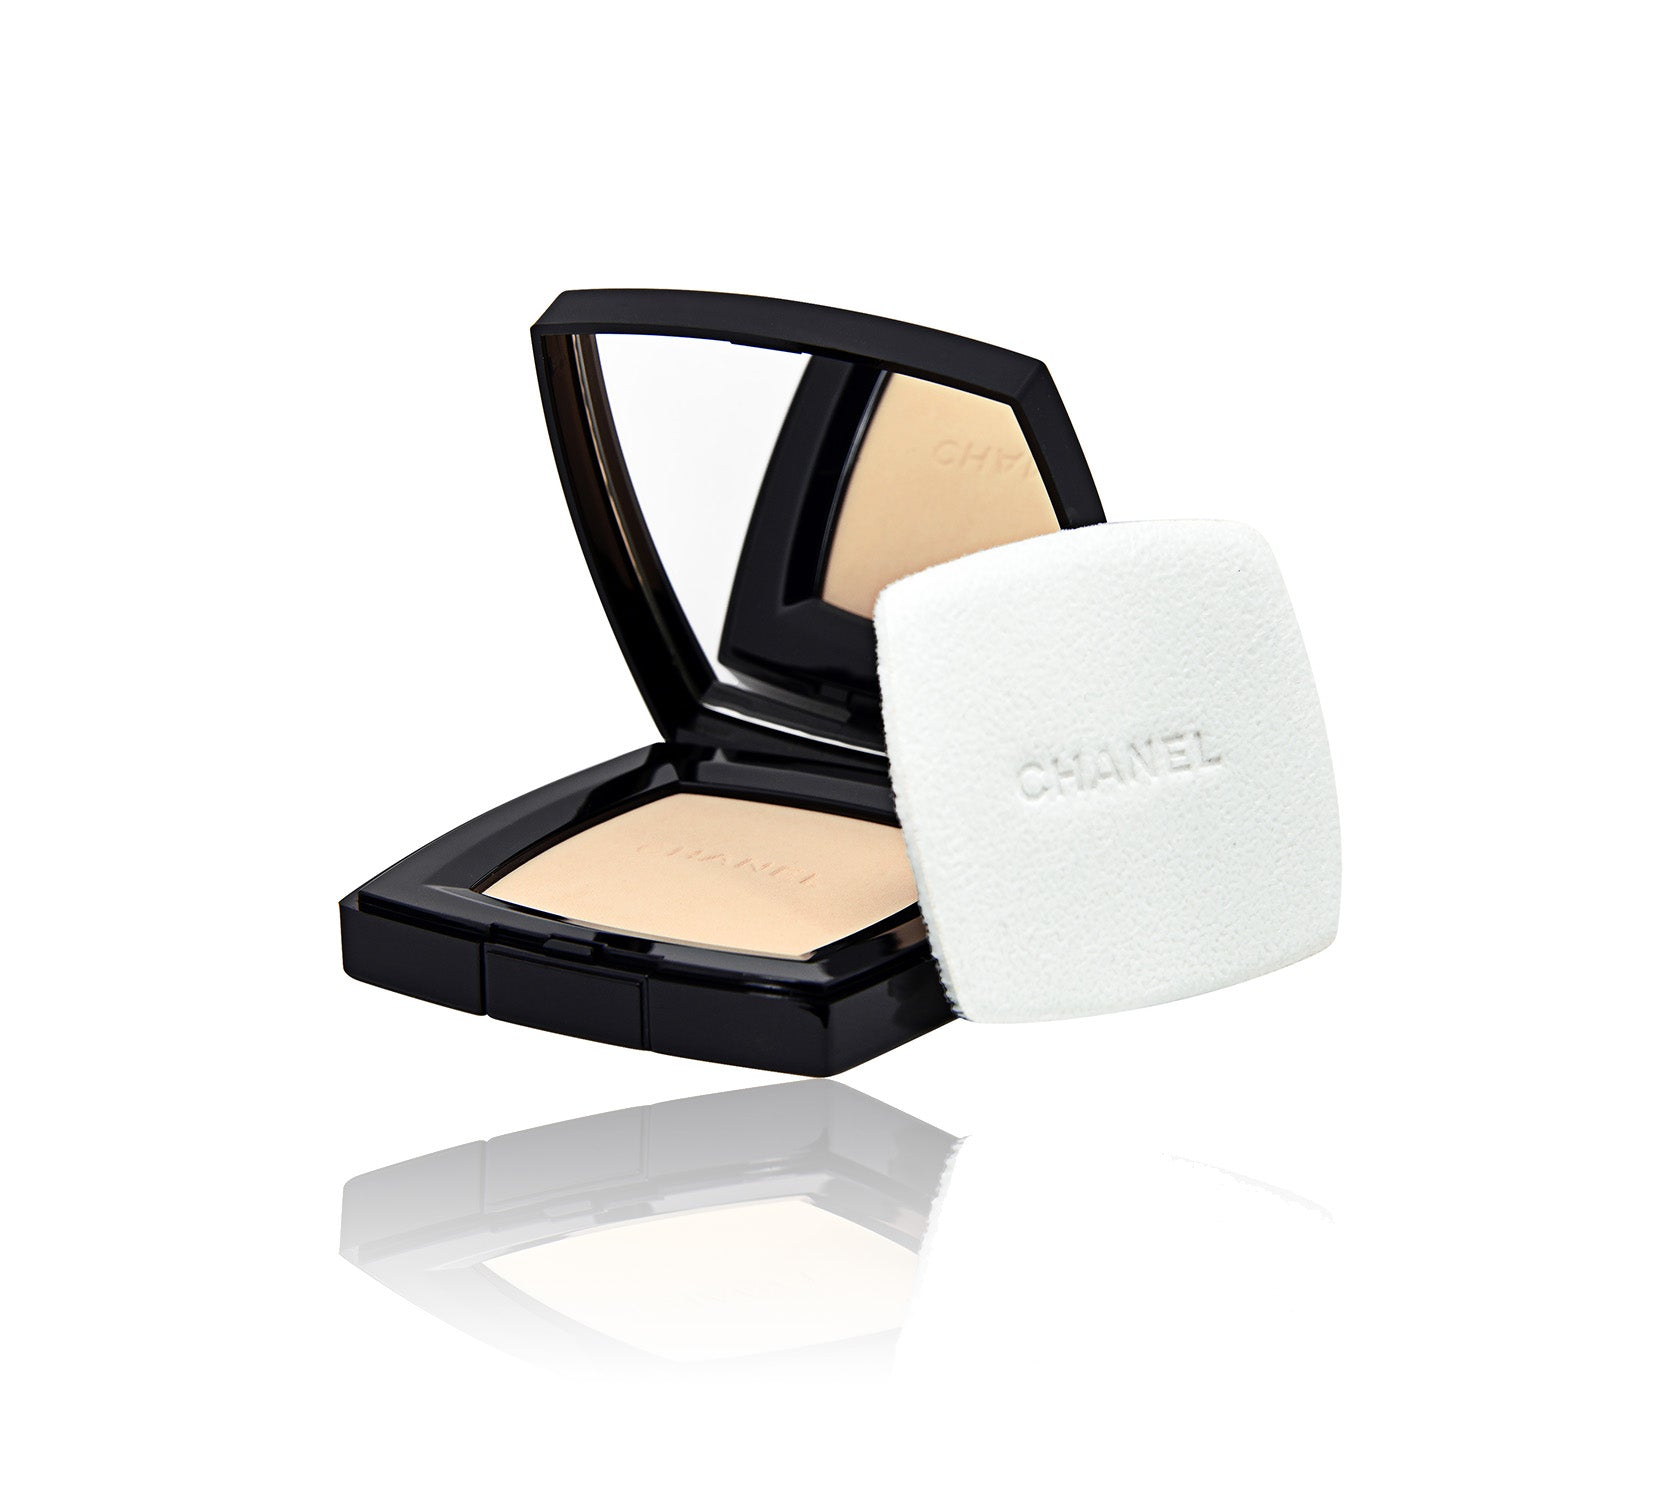 Poudre Universelle Compacte Natural Finished Pressed Powder